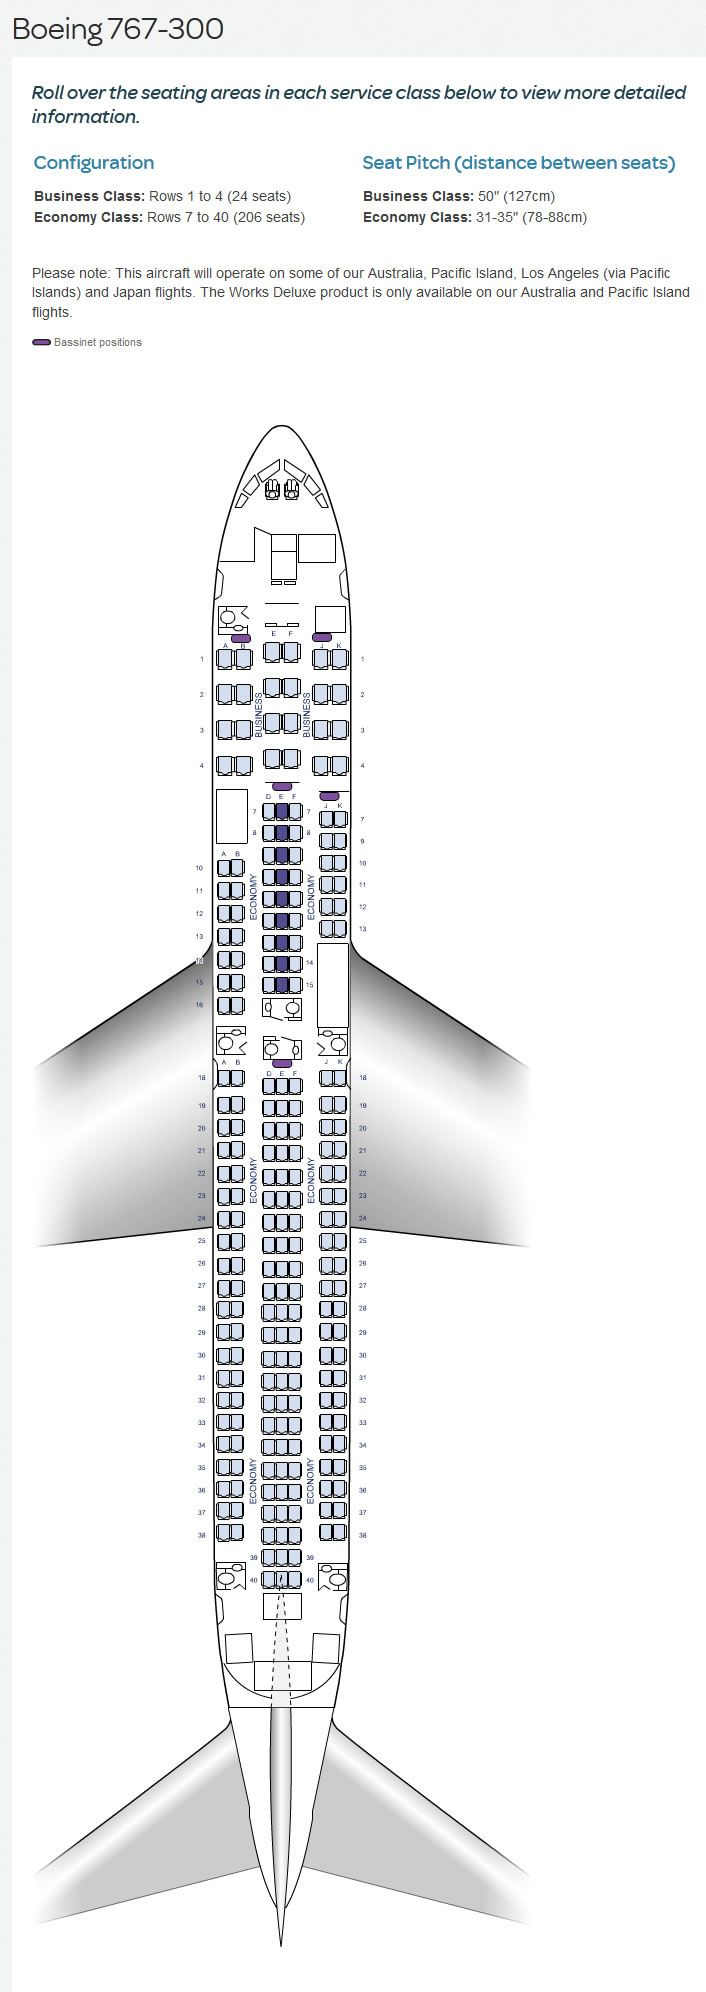 air new zealand airlines boeing 767-300 aircraft seating ... #12